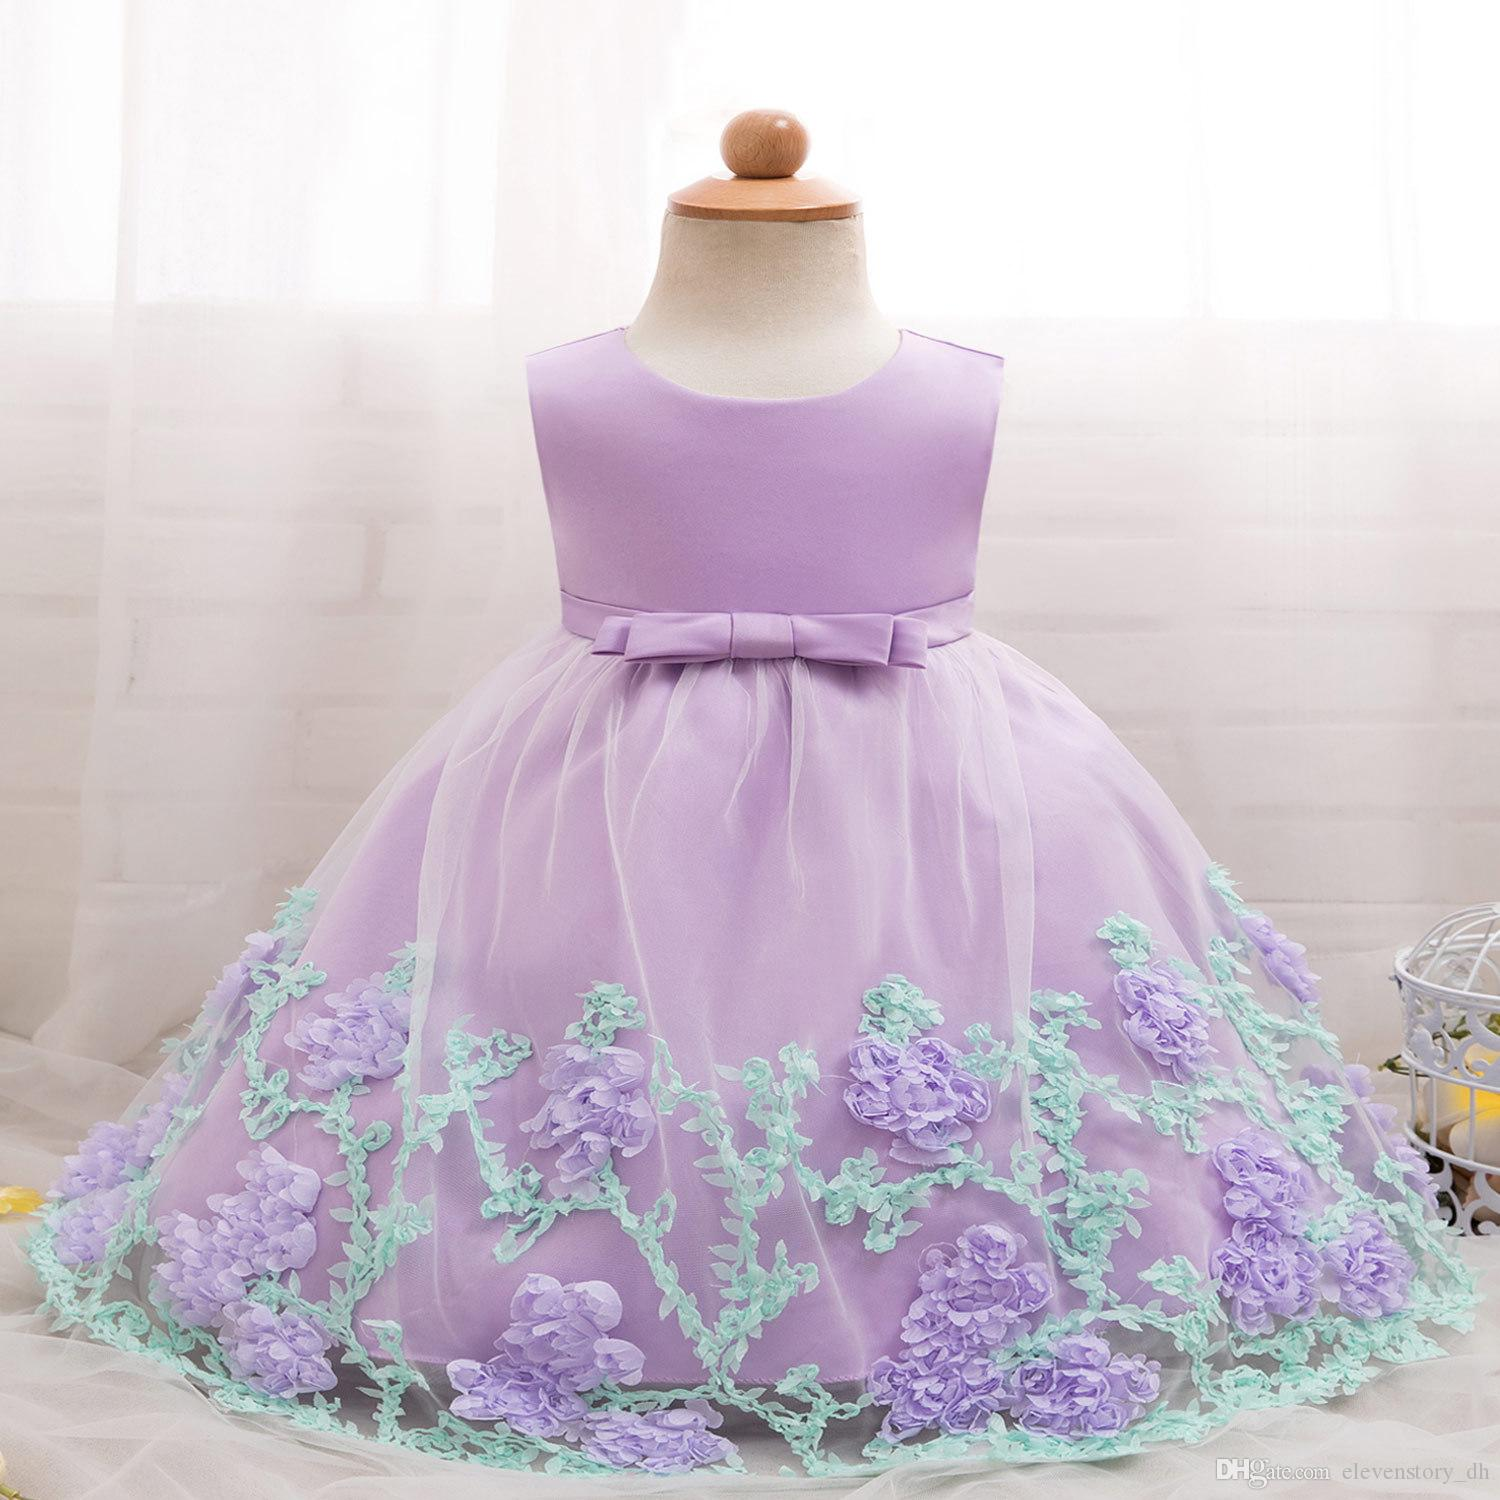 2018 6 months to 2 years baby girls tutu flowers dresses summer 2018 6 months to 2 years baby girls tutu flowers dresses summer kids party wear children birthday festival clothing retail r1aax808ds 01 from izmirmasajfo